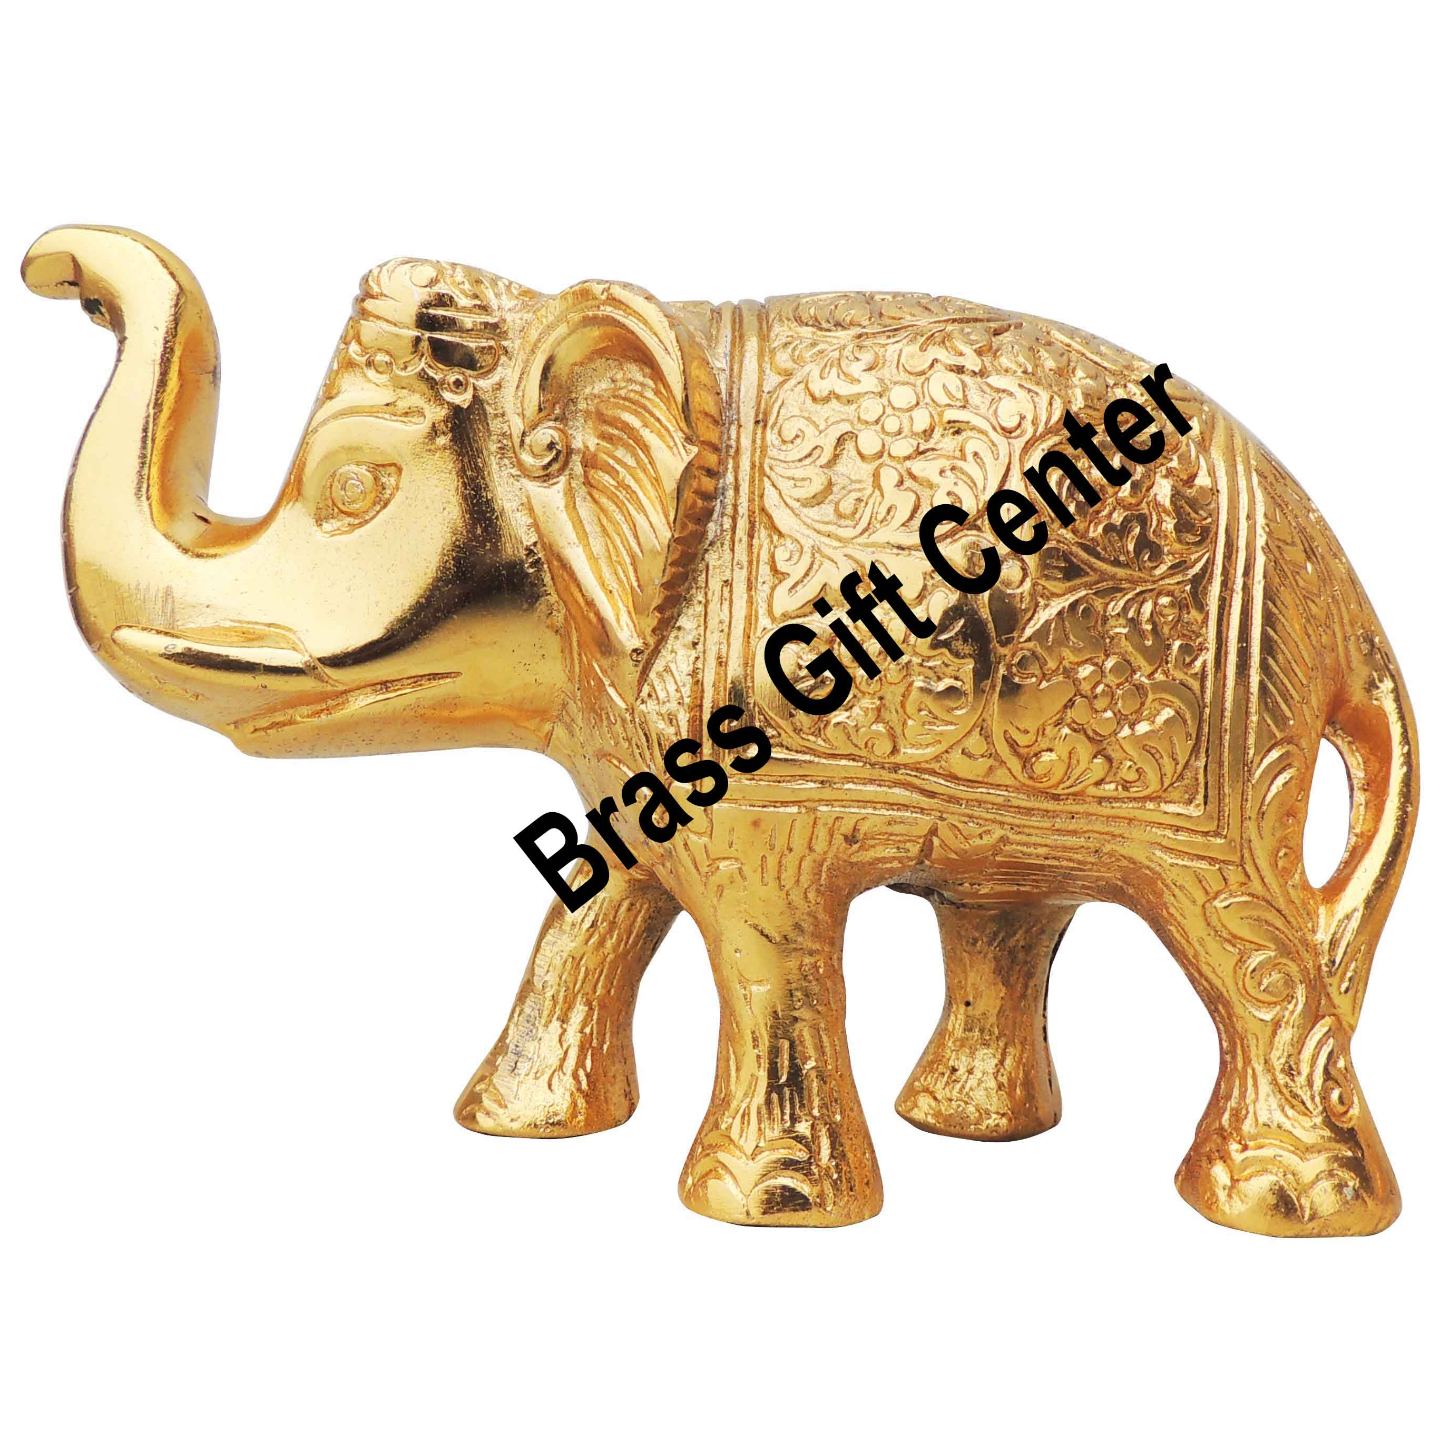 Showpiece Elephant Statue With Gold Finish, Height 3.5 Inch (AS240 A)